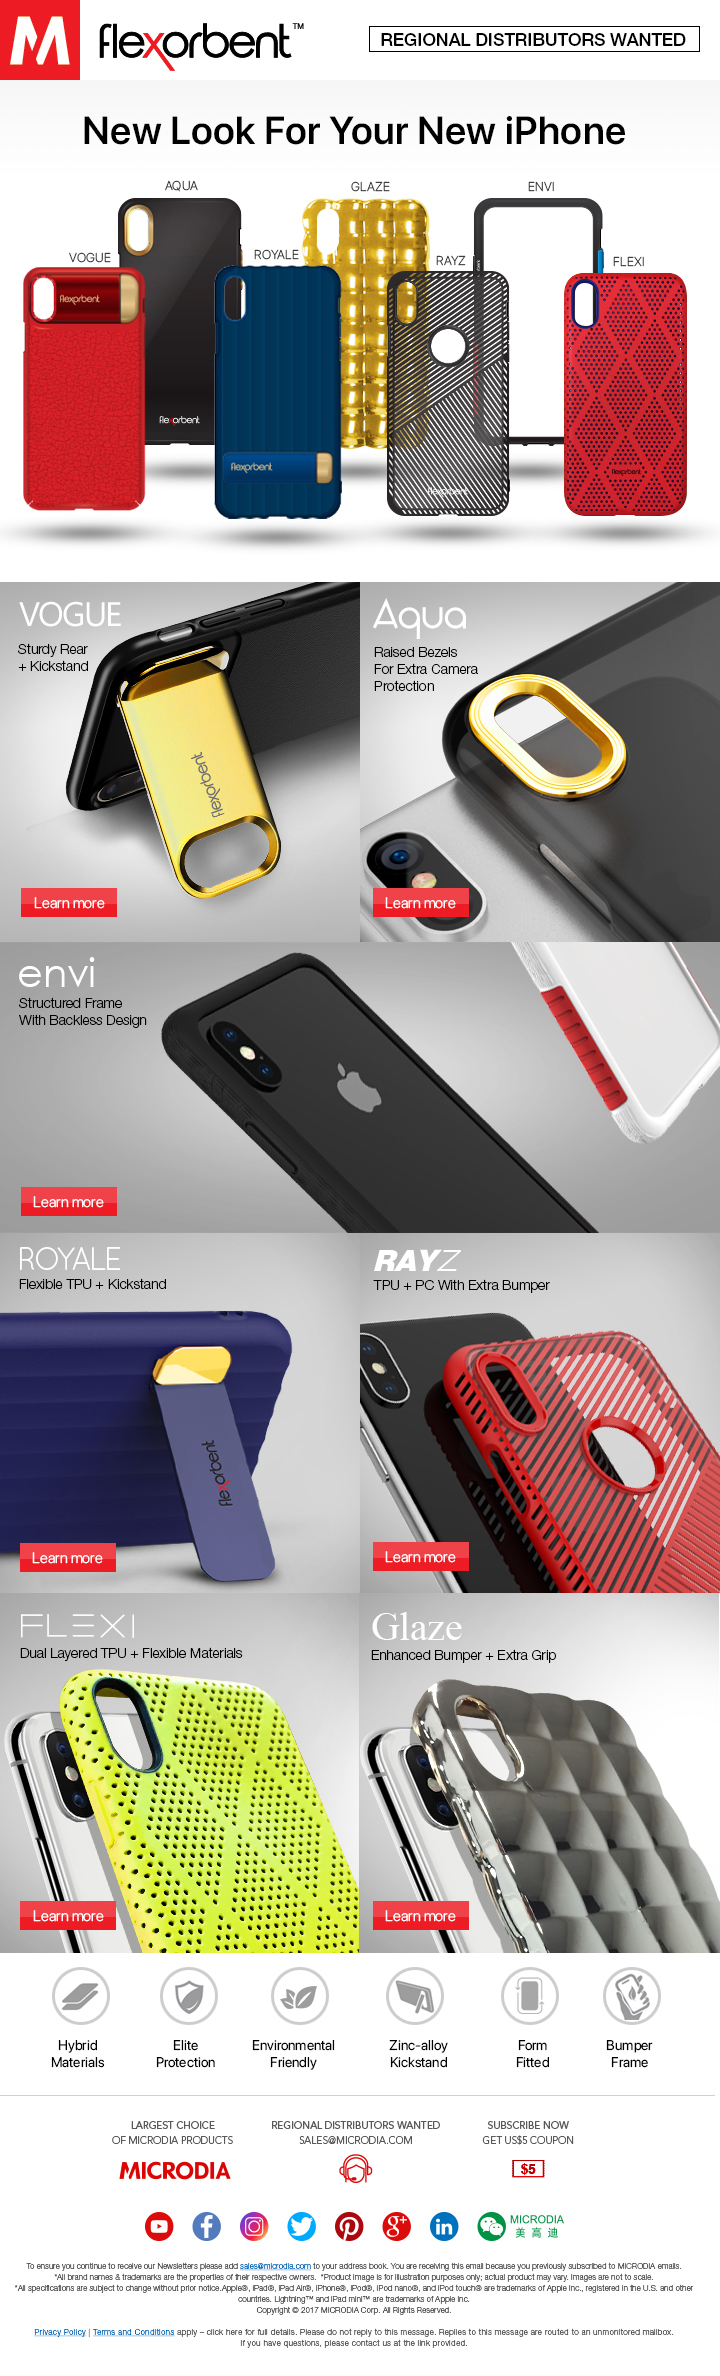 New Look for Your New iPhone